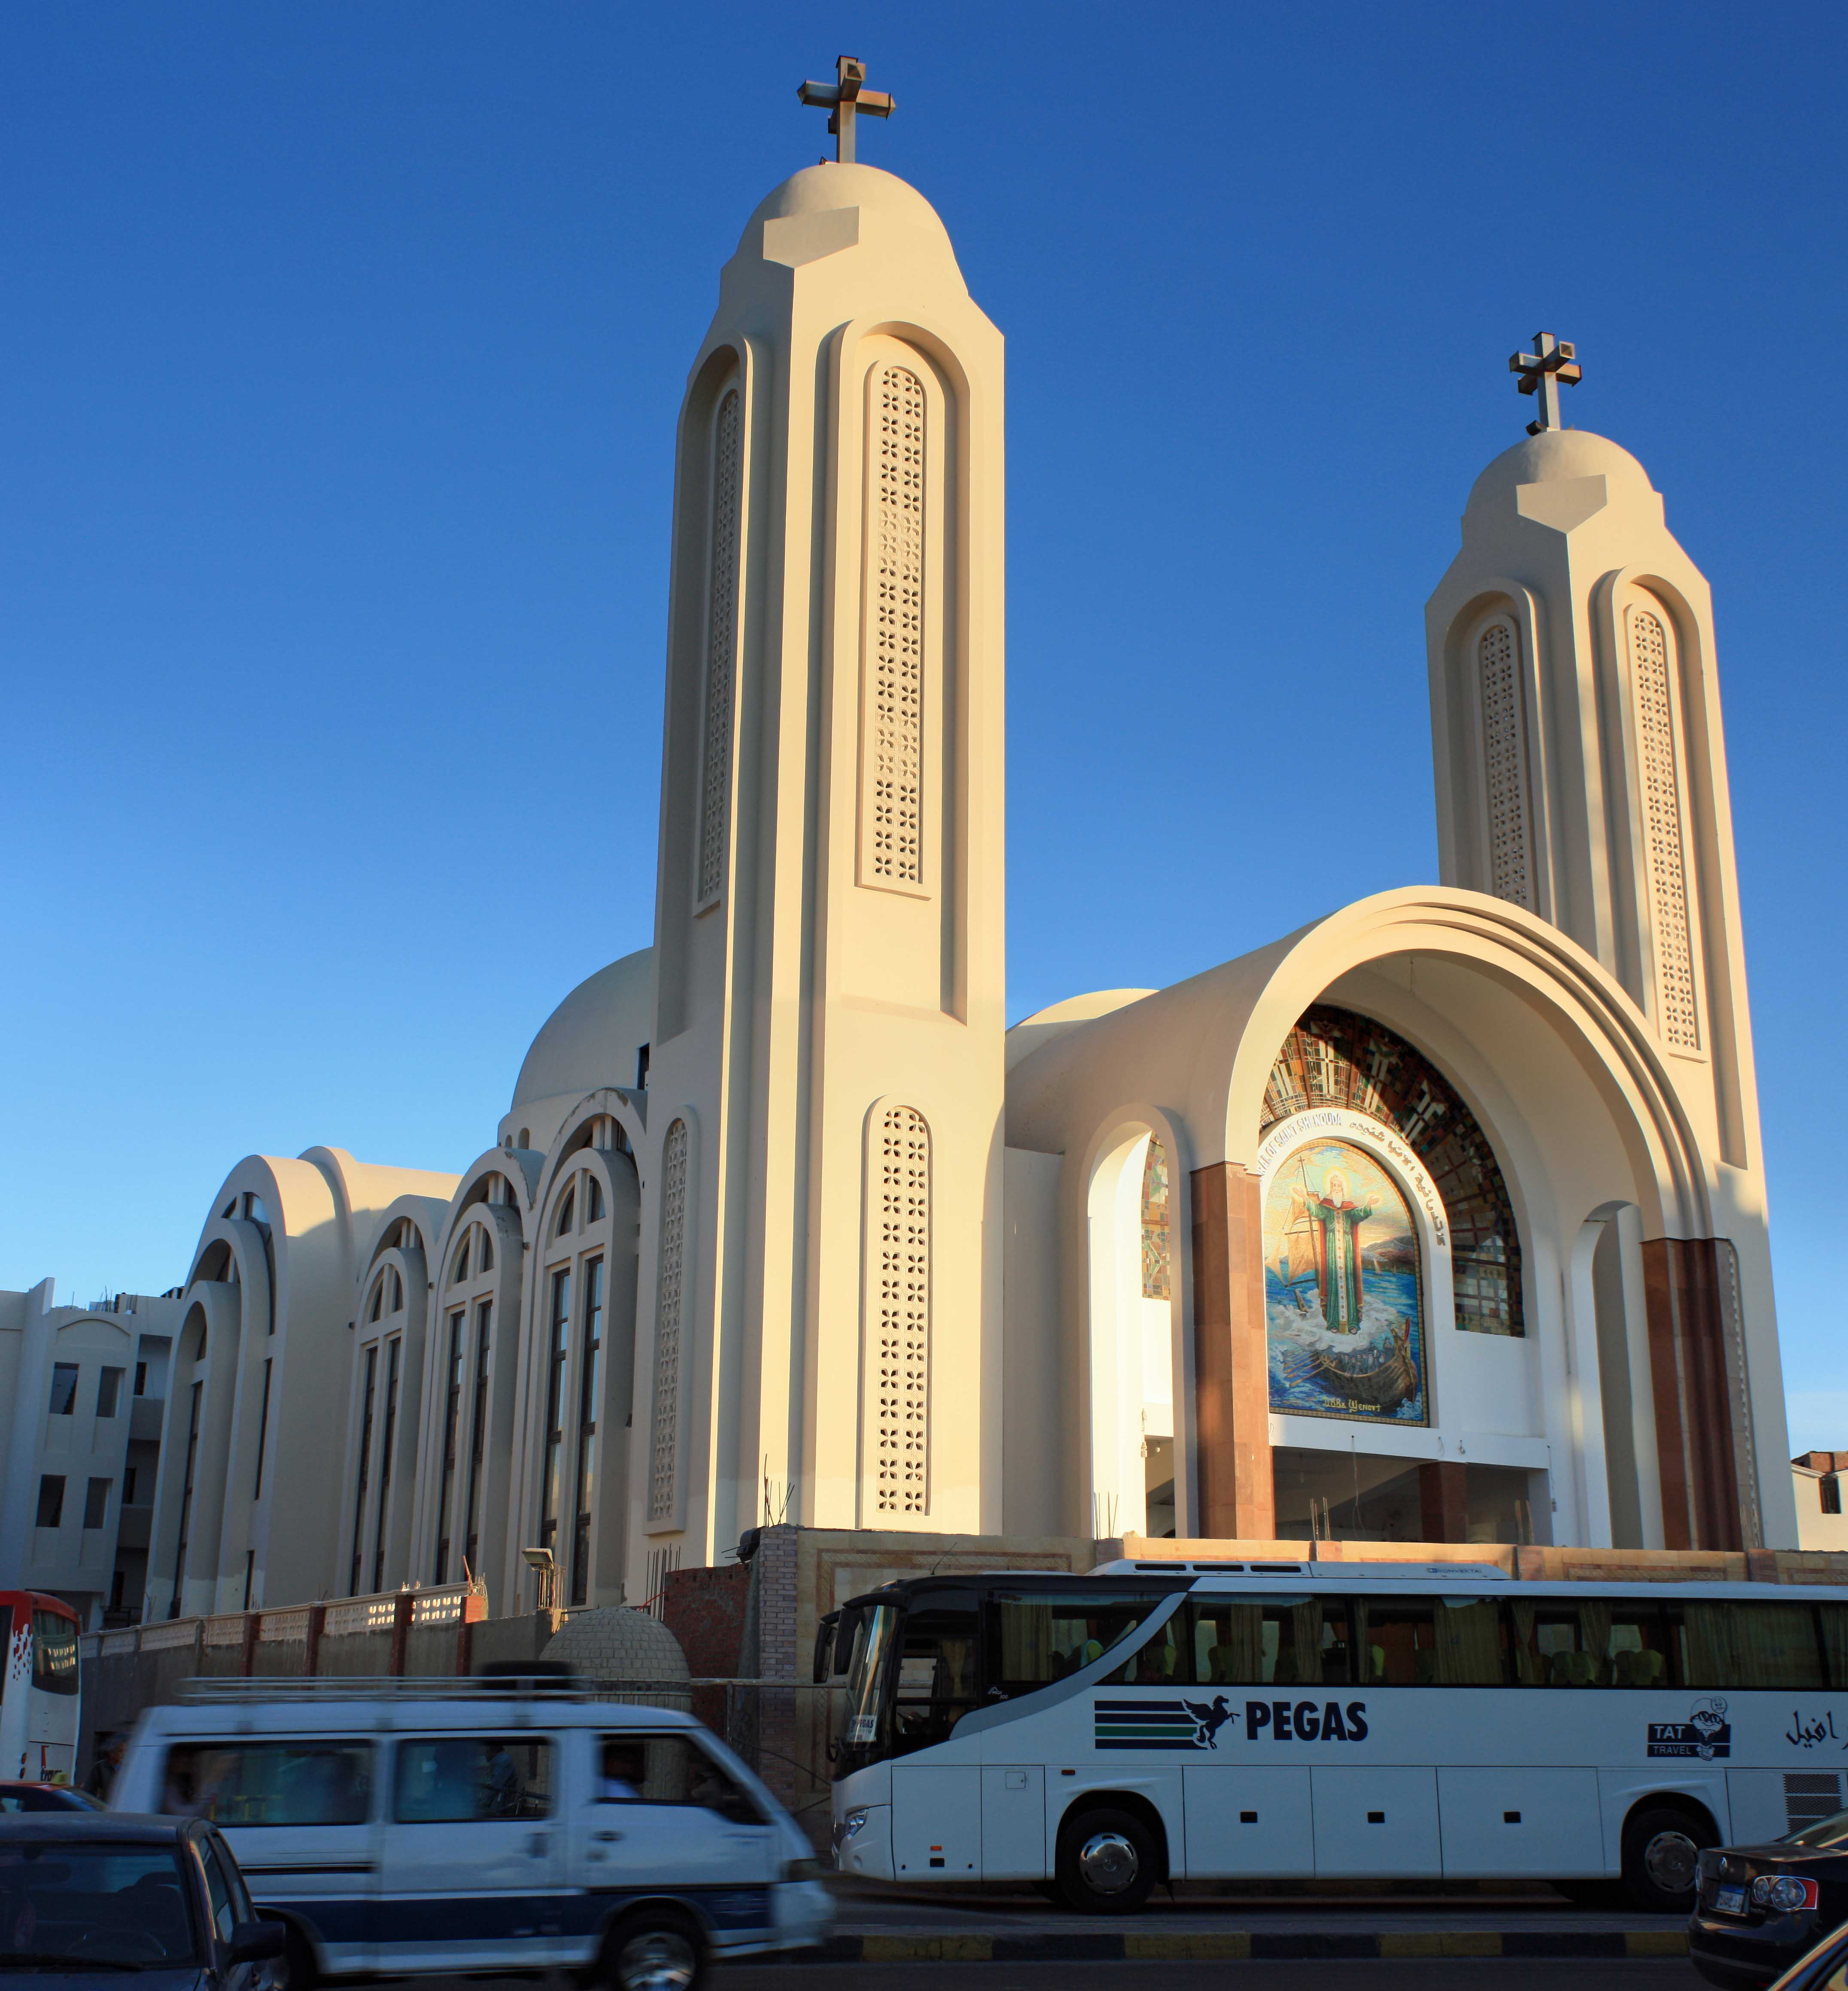 Can You Build Churches In Egypt